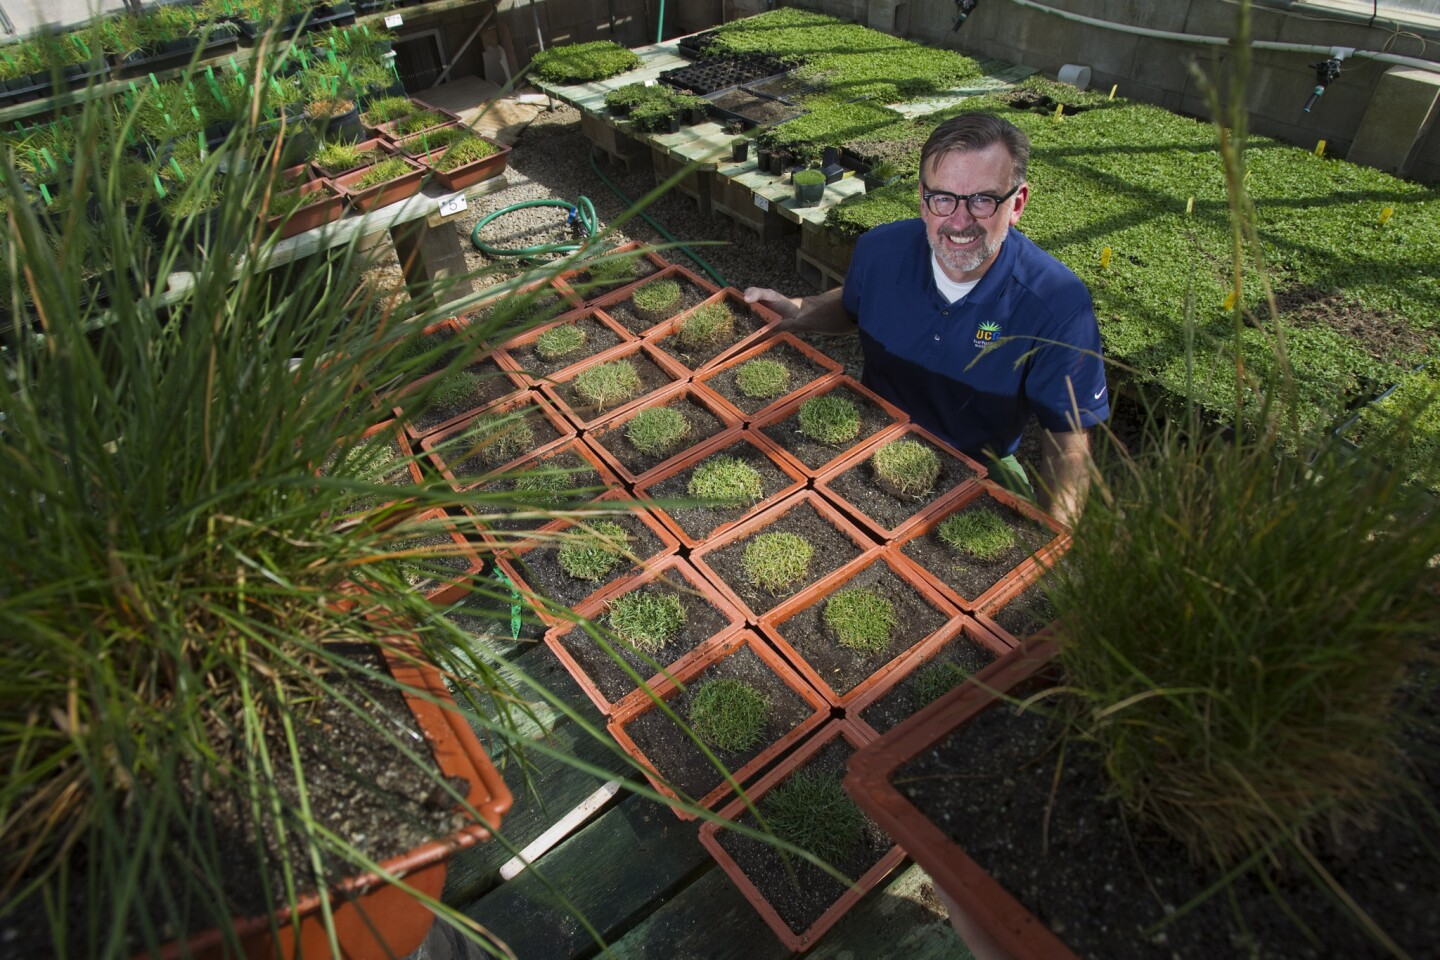 Jim Baird, turfgrass specialist at UC Riverside, displays grasses he is studying for drought tolerance.